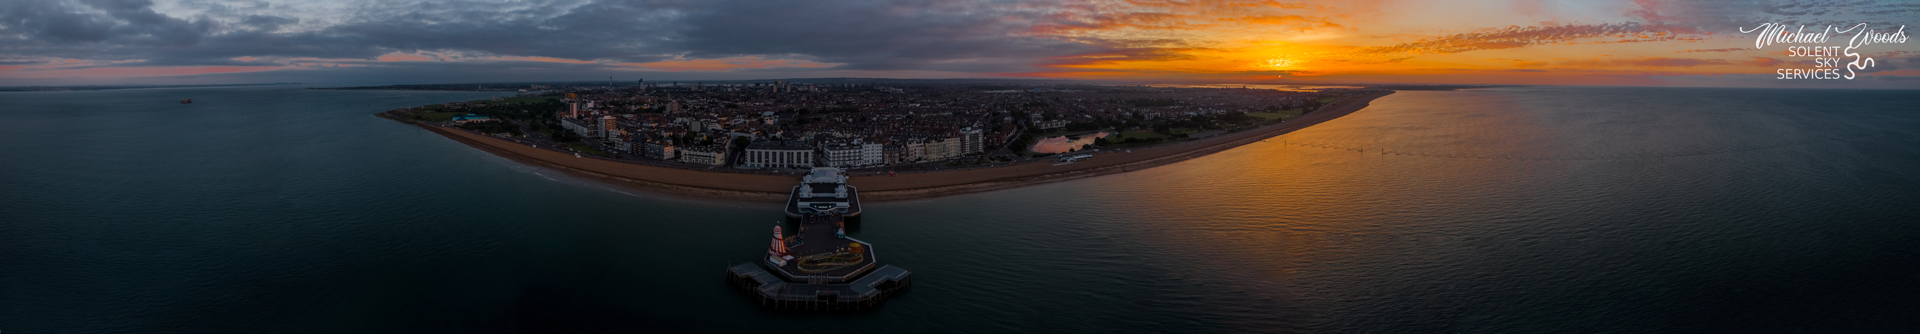 South-Parade-Pier-30.06.19---Solent-Sky-Services---85.png